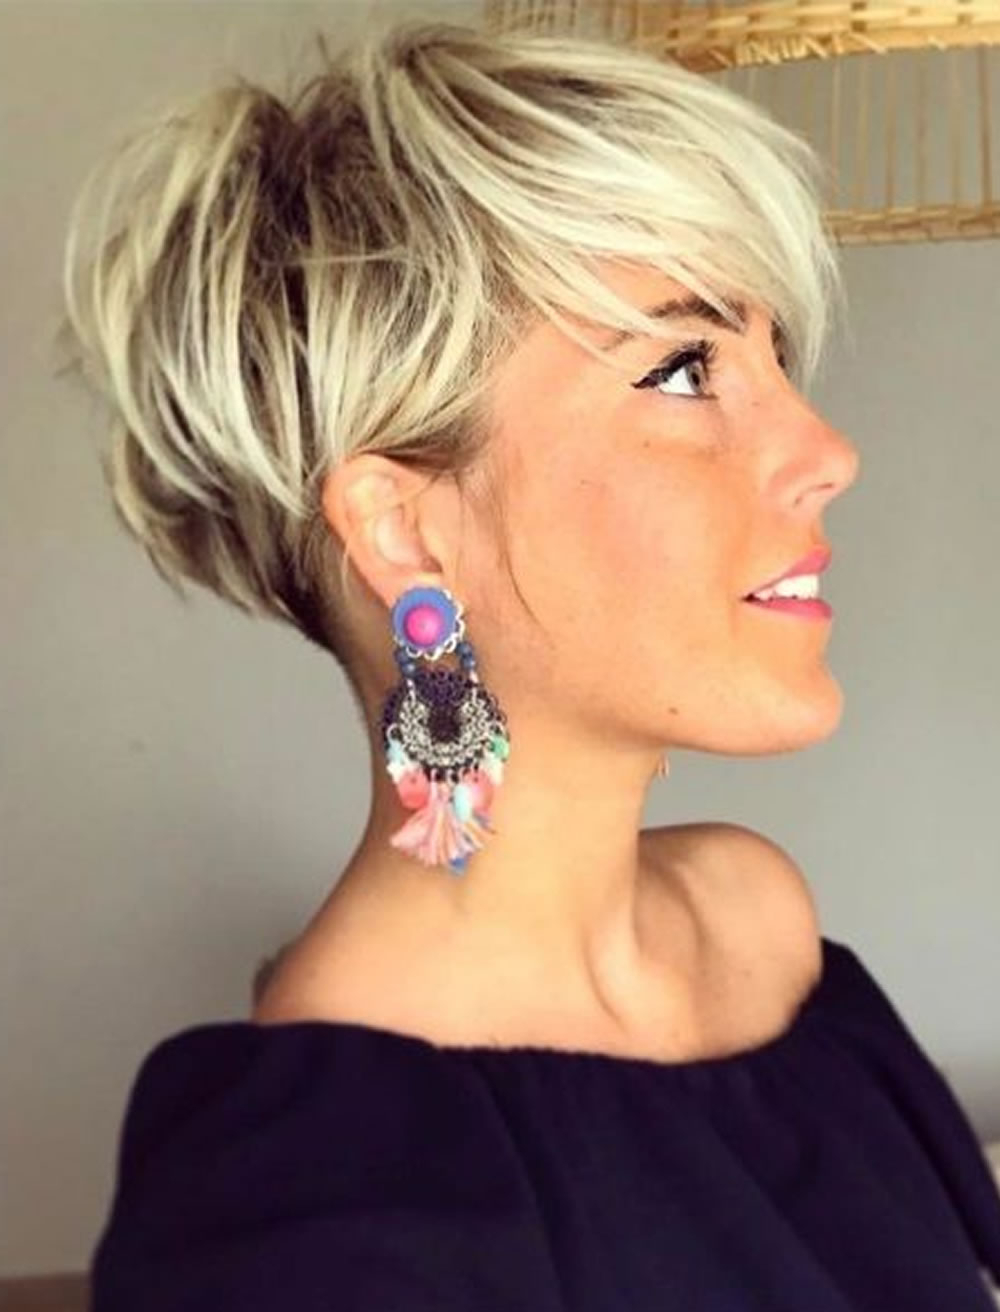 30 Best Asymmetric Short Haircuts For Women Of All Time – Hairstyles Inside Symmetrical Short Haircuts (View 9 of 25)